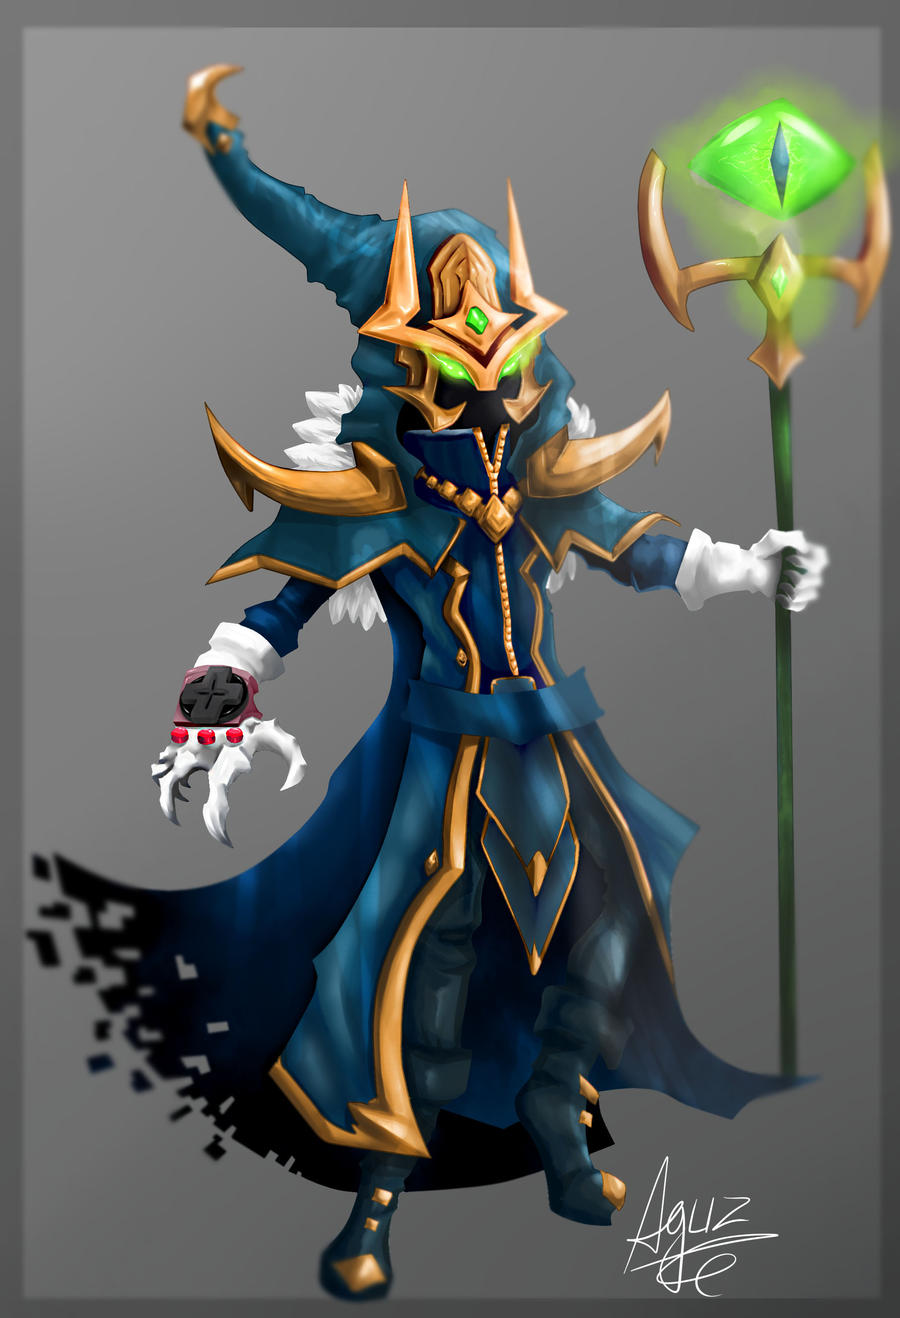 Unimaginable is the power of Veigar by AguZ on DeviantArt